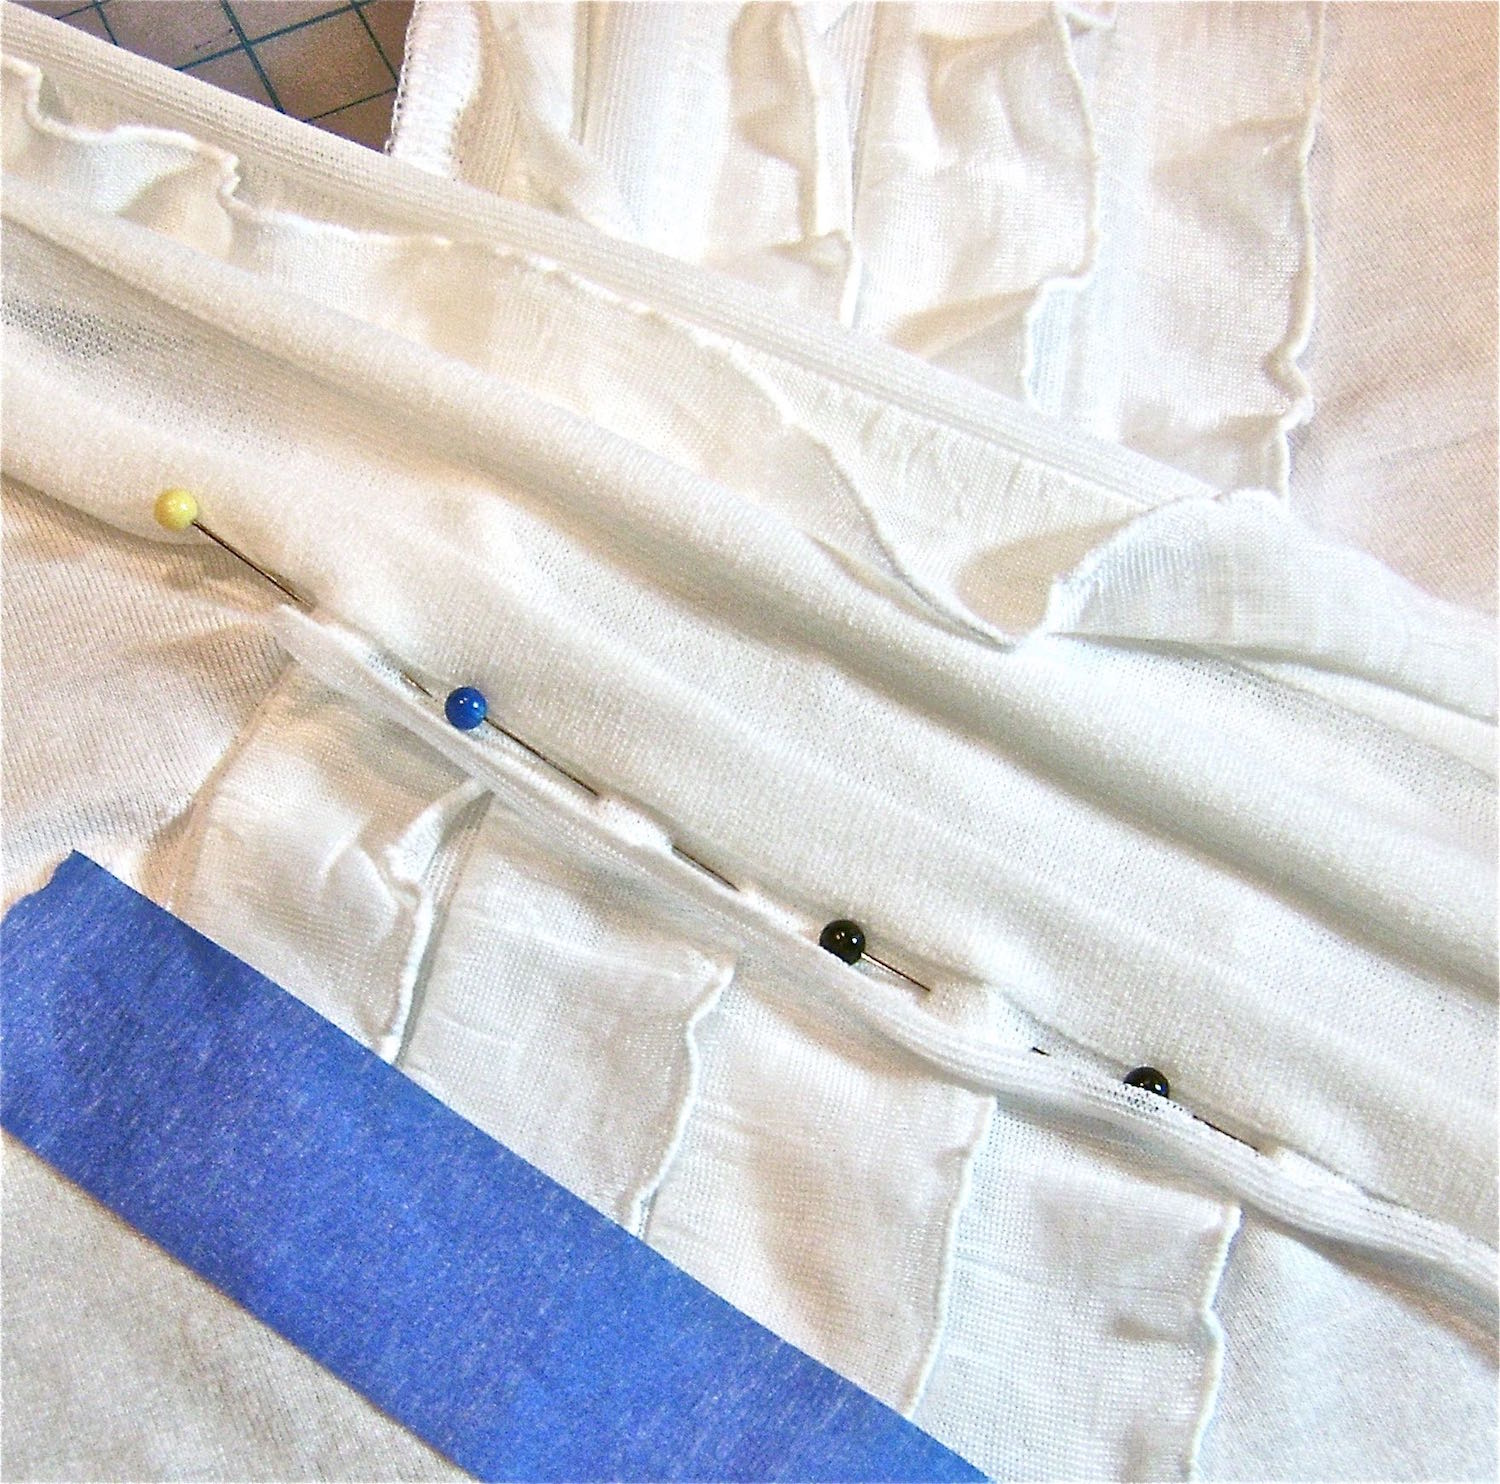 step 10 - With the right side of ruffles to the right side of the shirt, sew the remainder of the left ruffle strip to the shirt, from the slit, over the left ruffles and all the way to the hemline. Remove the tape on the left ruffle strip and trim excess.